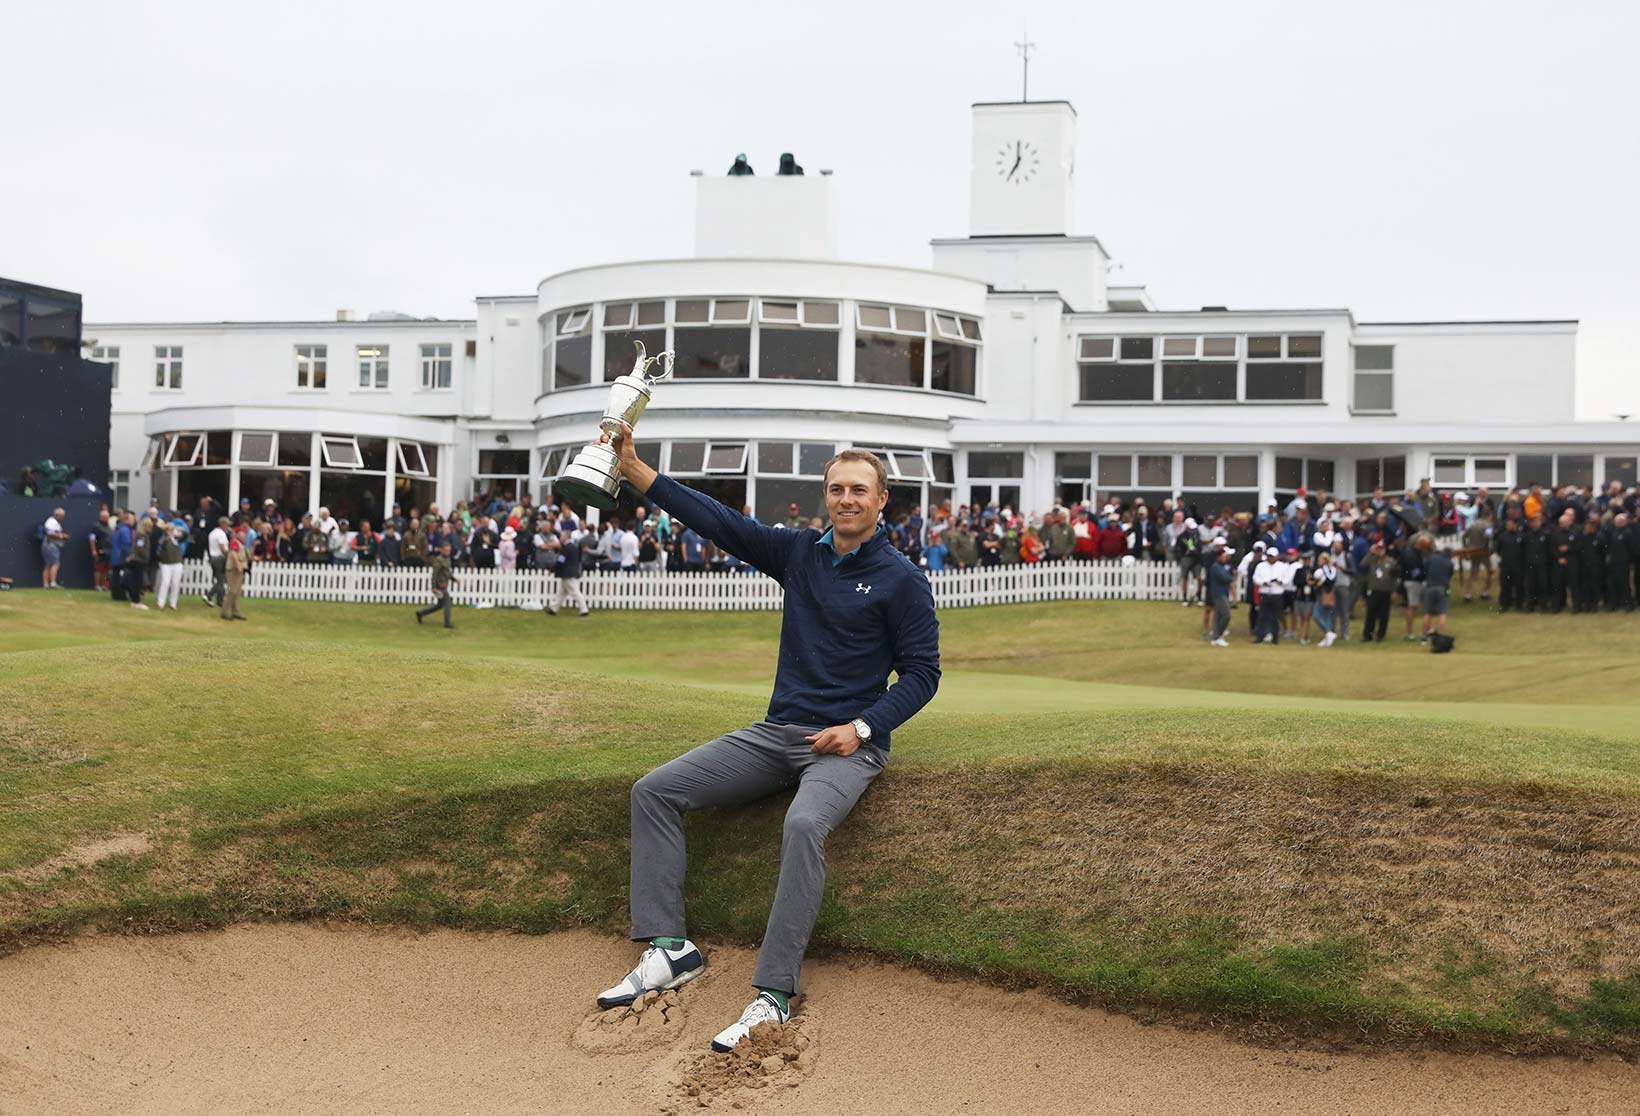 2017 Open Championship: Final Round - Jordan, the Claret Jug and the Royal Birkdale Clubhous